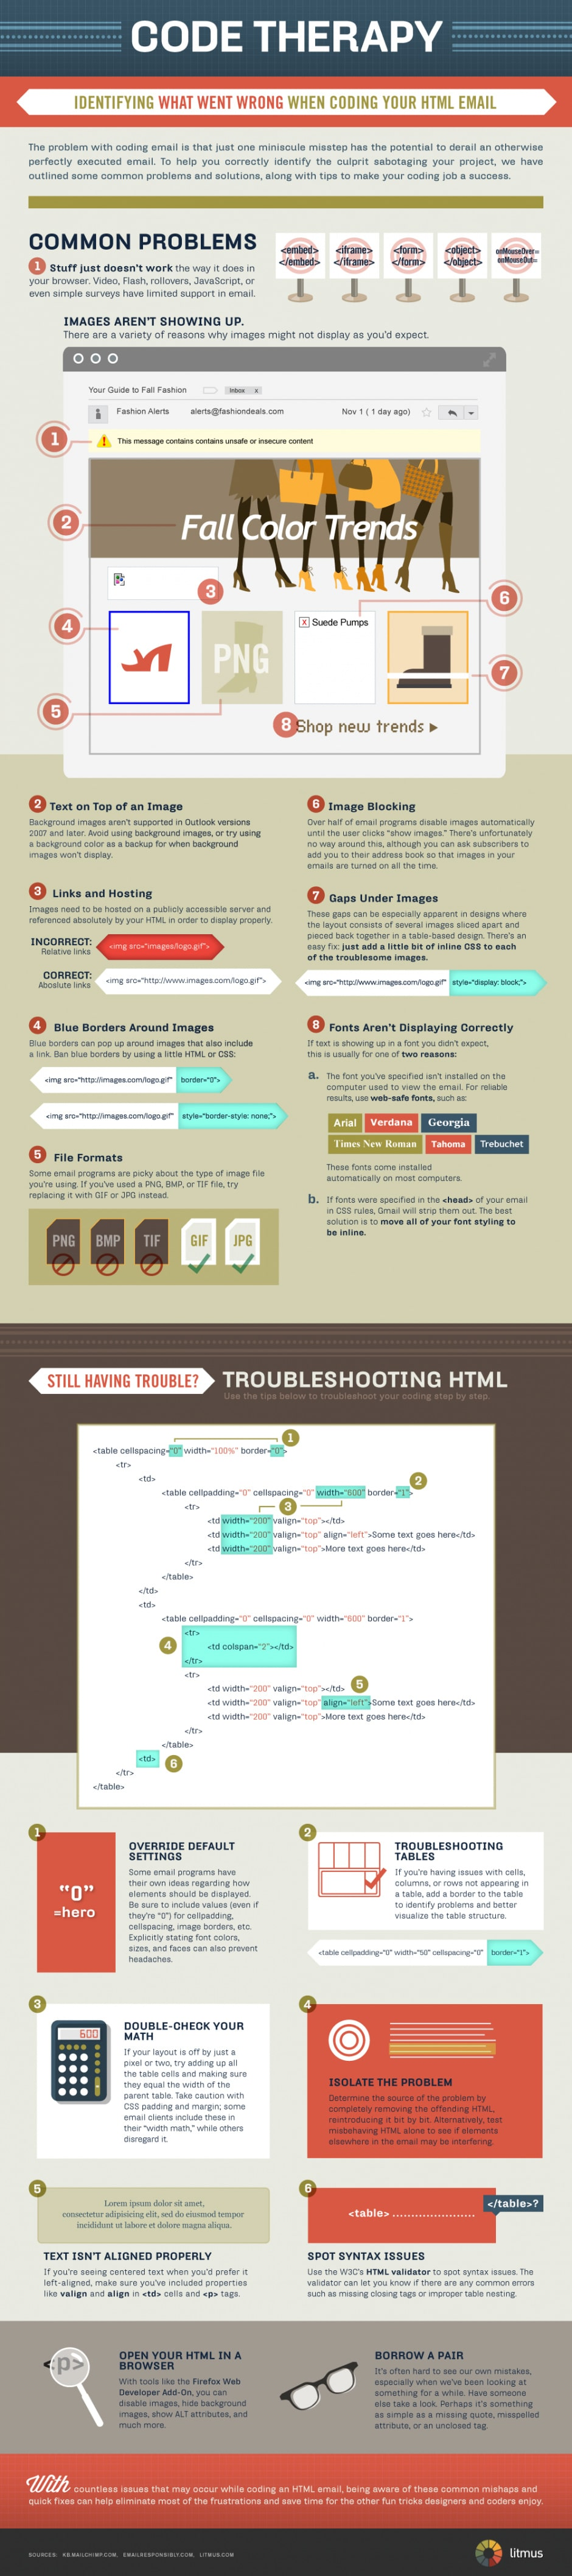 Bug Fight Your HTML Email Code With These 16 Tips [Infographic]